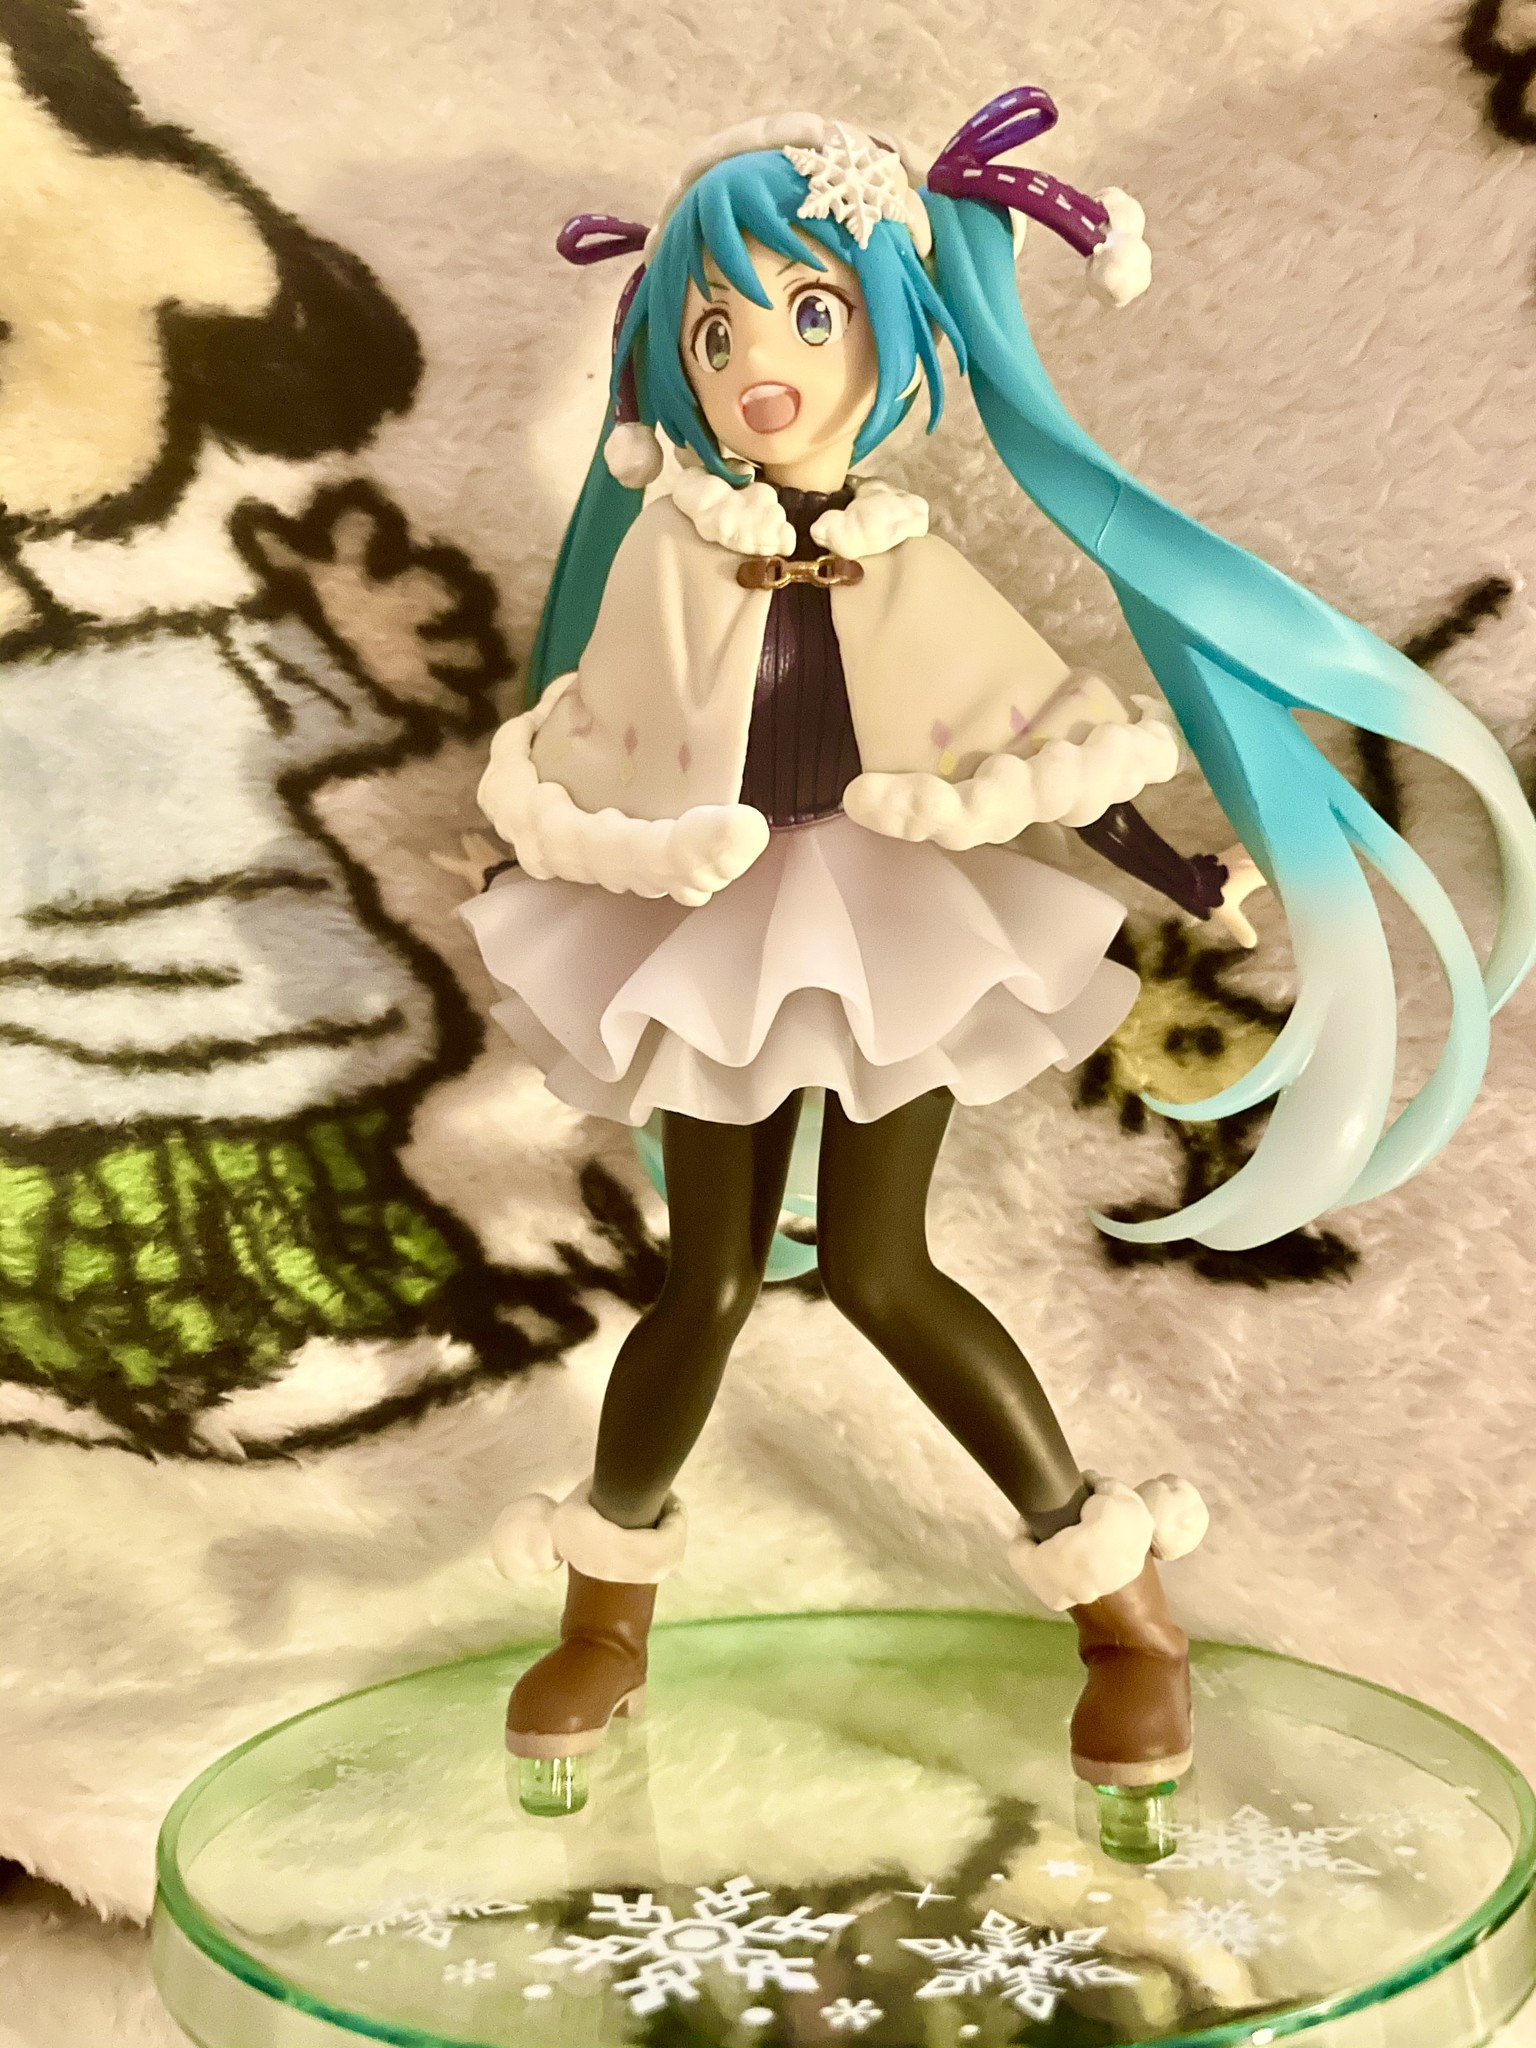 https://static.myfigurecollection.net/upload/pictures/2020/12/24/2590400.jpeg